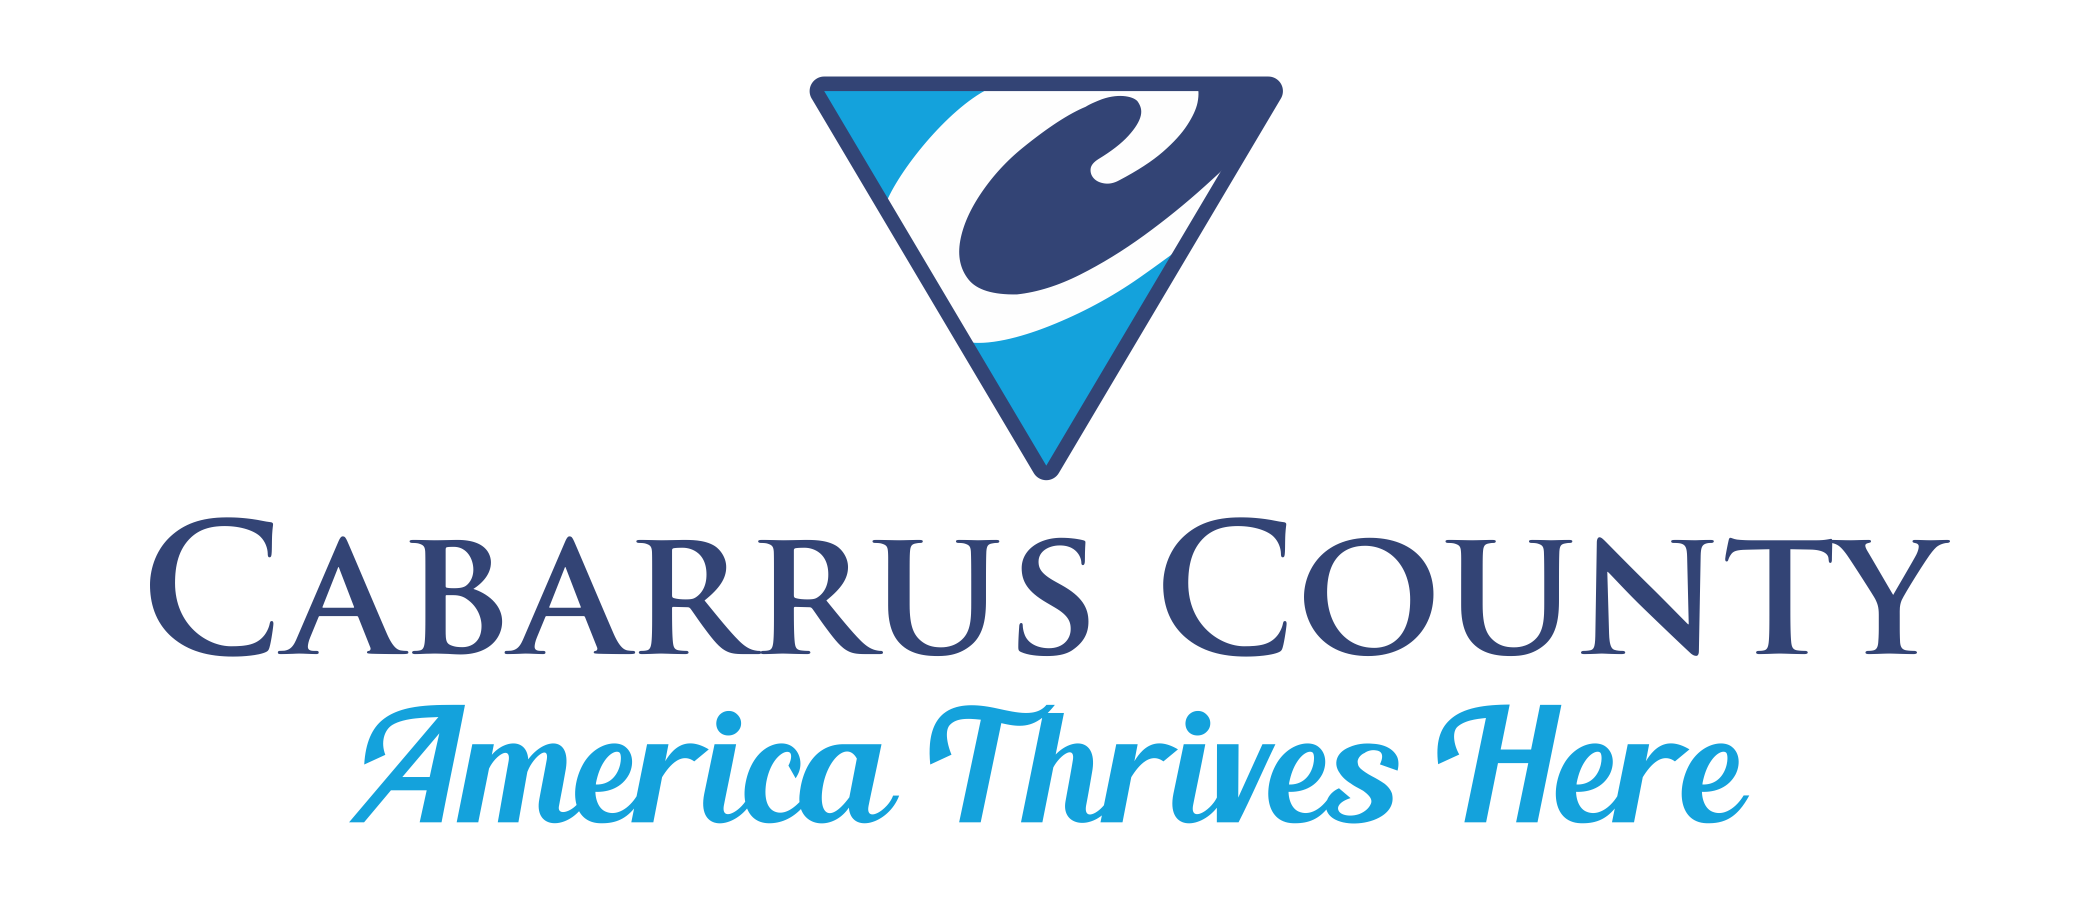 Cabarrus County logo  sc 1 th 147 & Cabarrus County NC